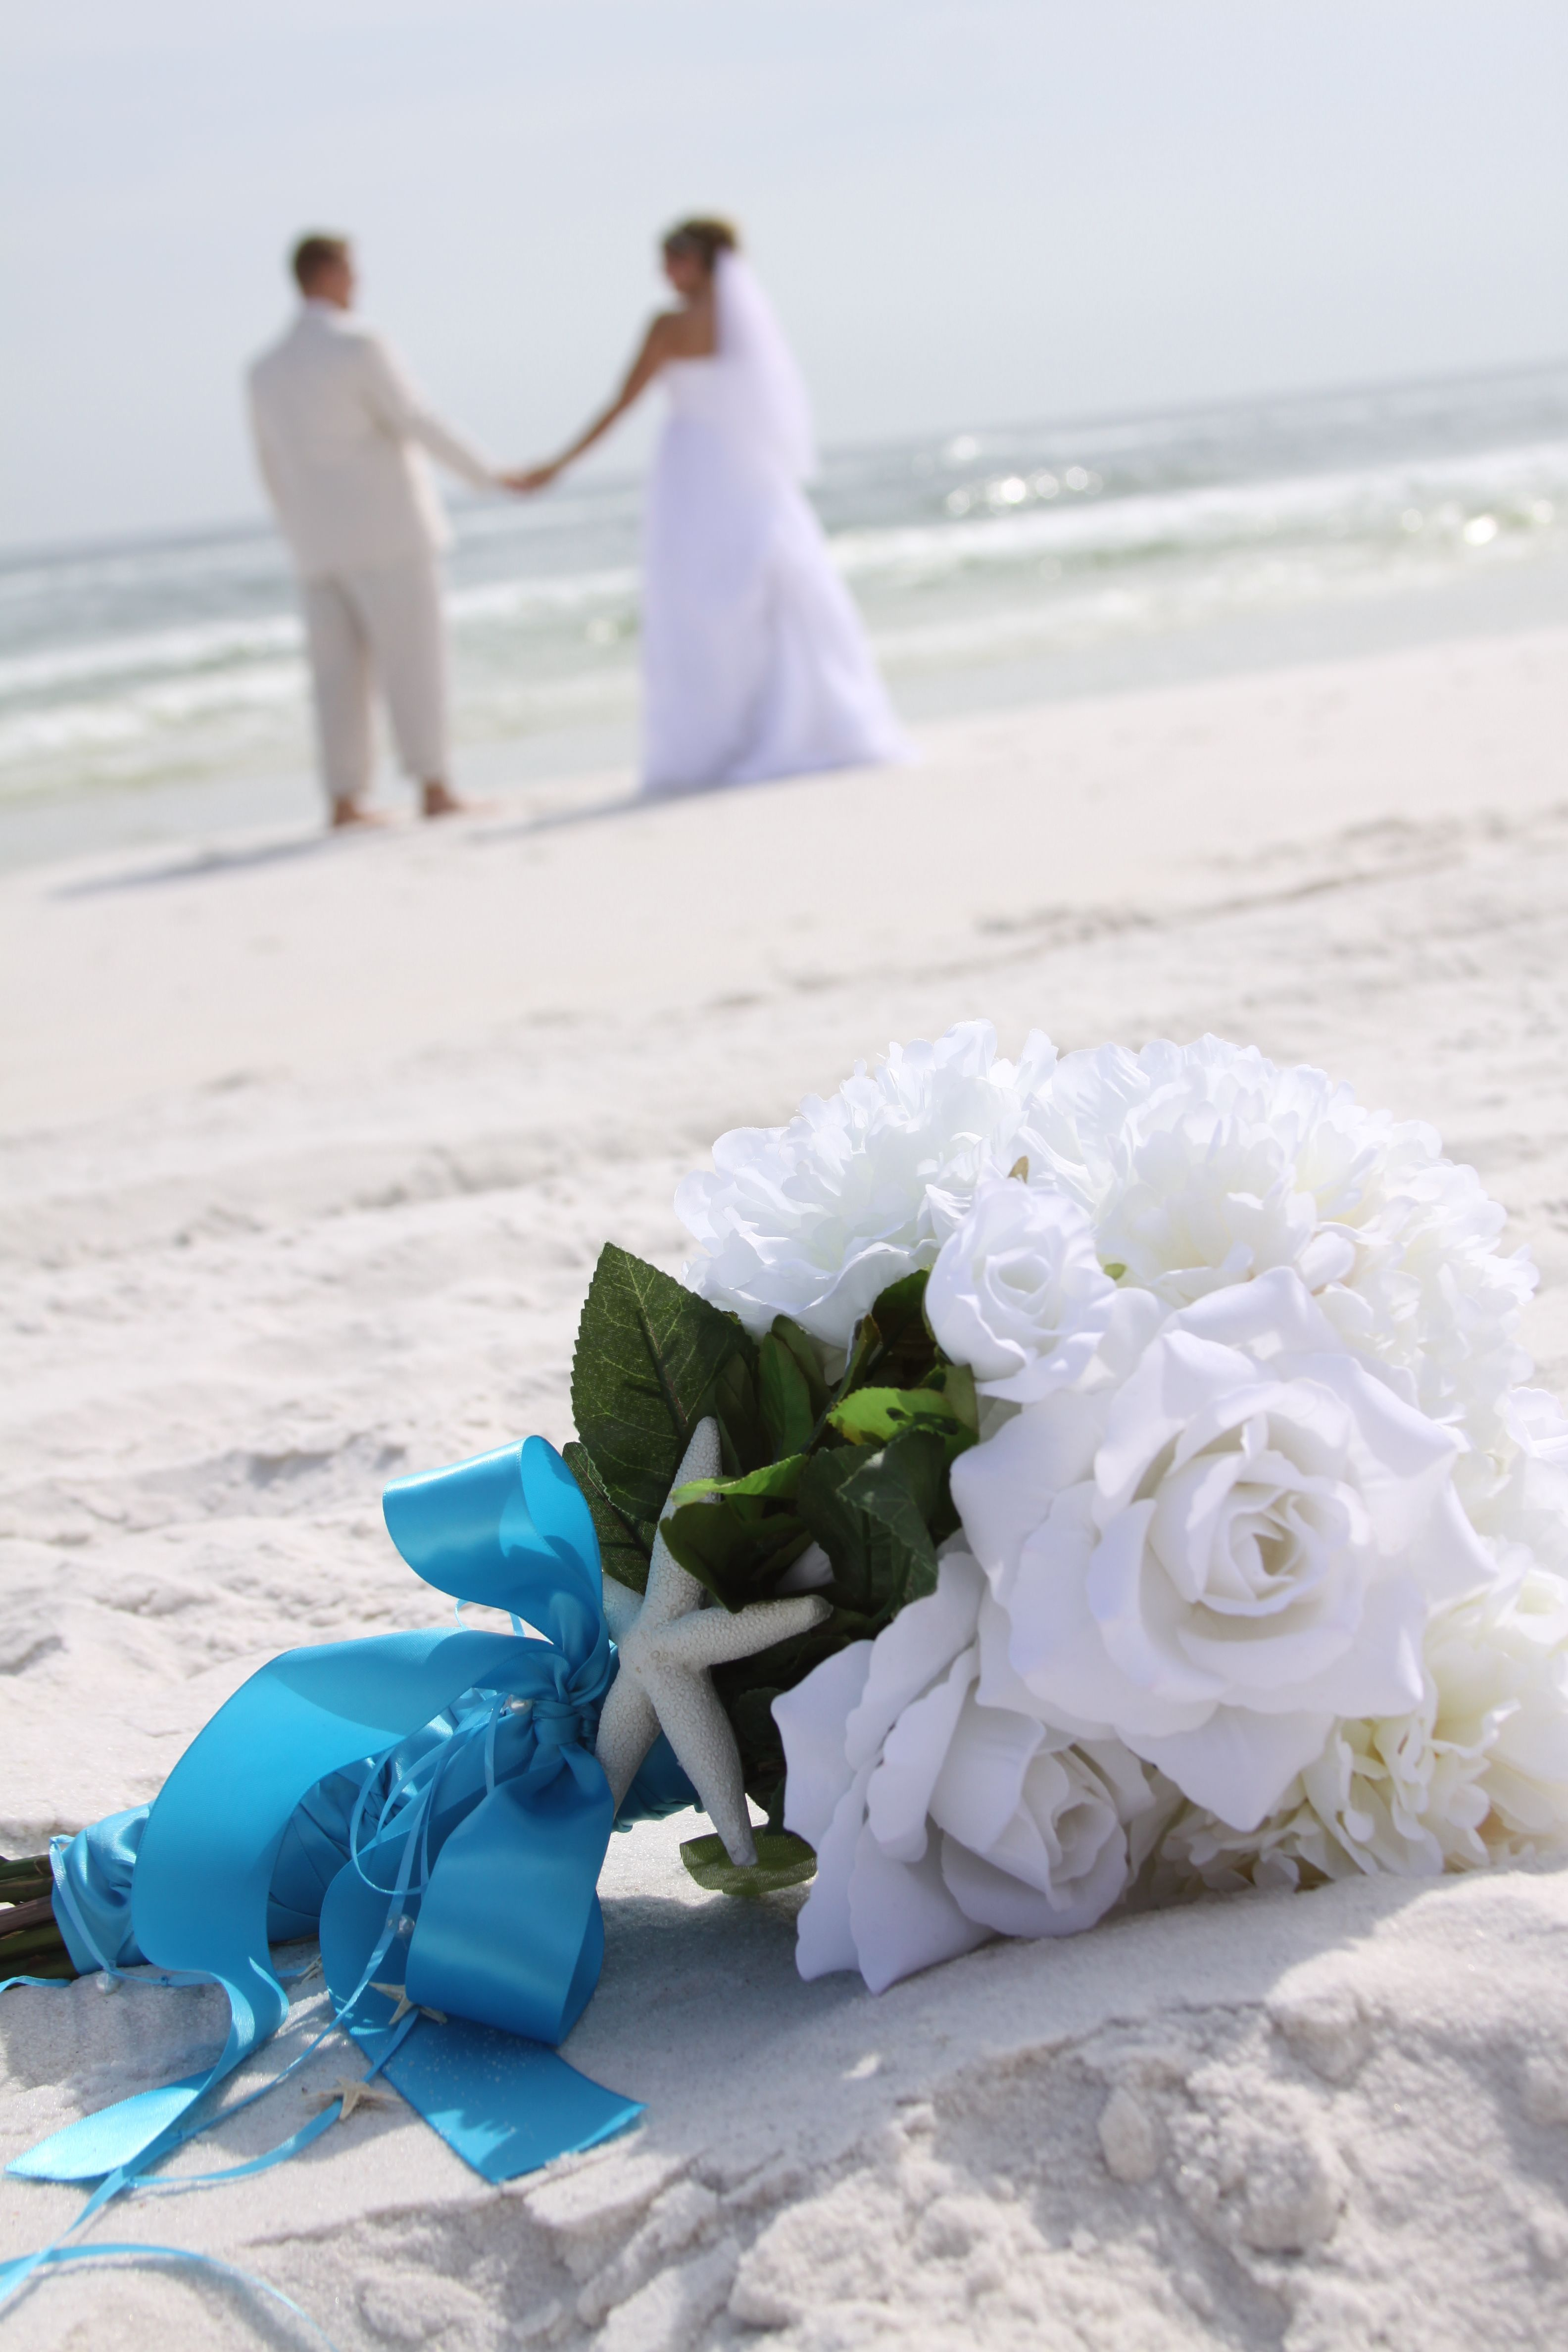 Wedding Photo's and photo albums are definitely memories that you want to keep protected in a SentrySafe